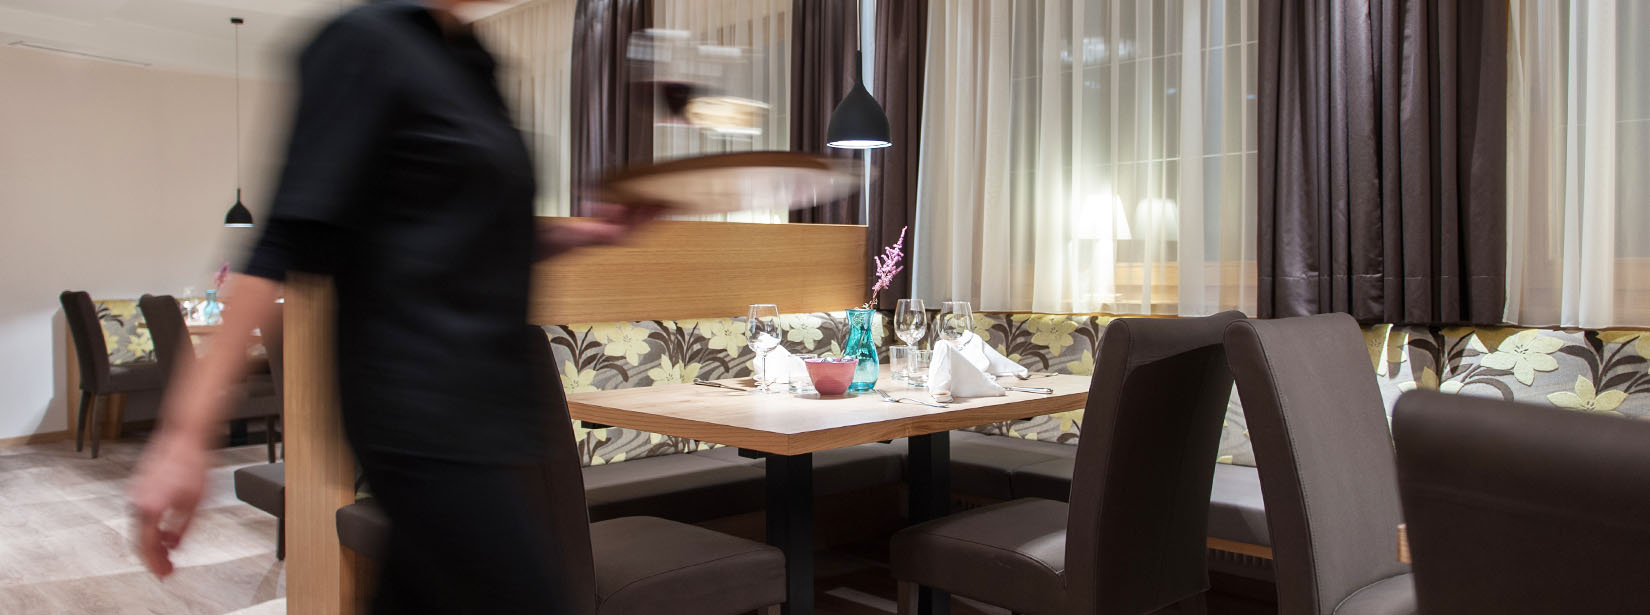 Coupon Hotel Barbian-Barbiano